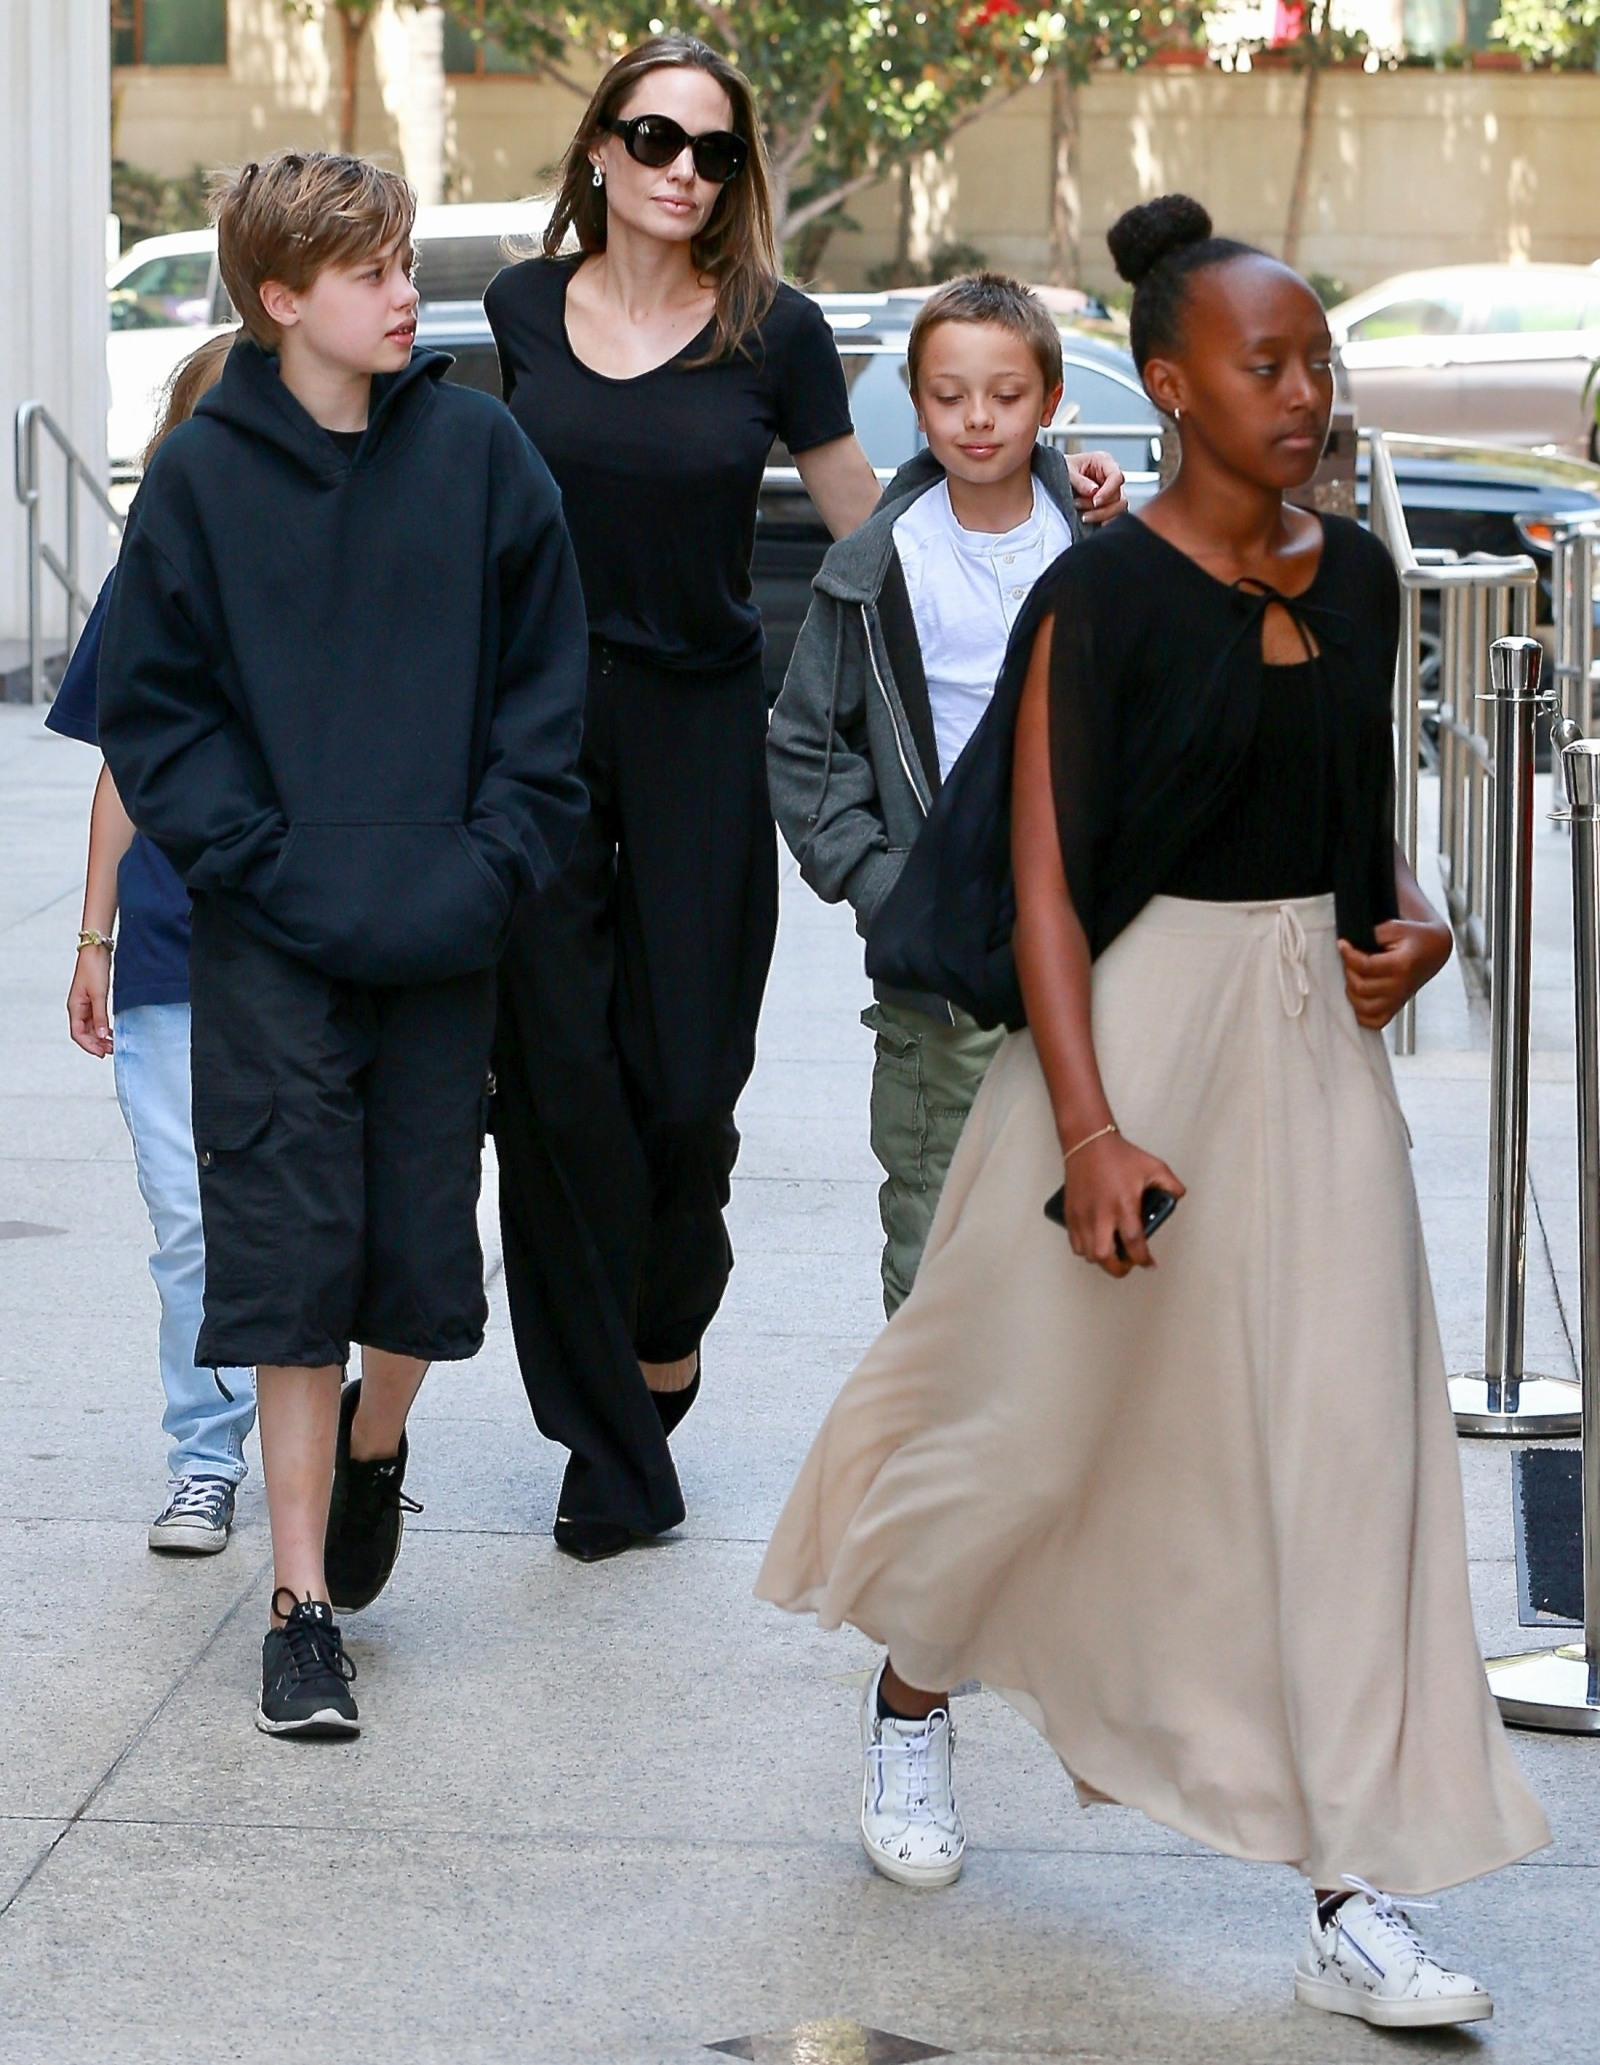 Angelina Jolie takes the kids on a movie date in LA